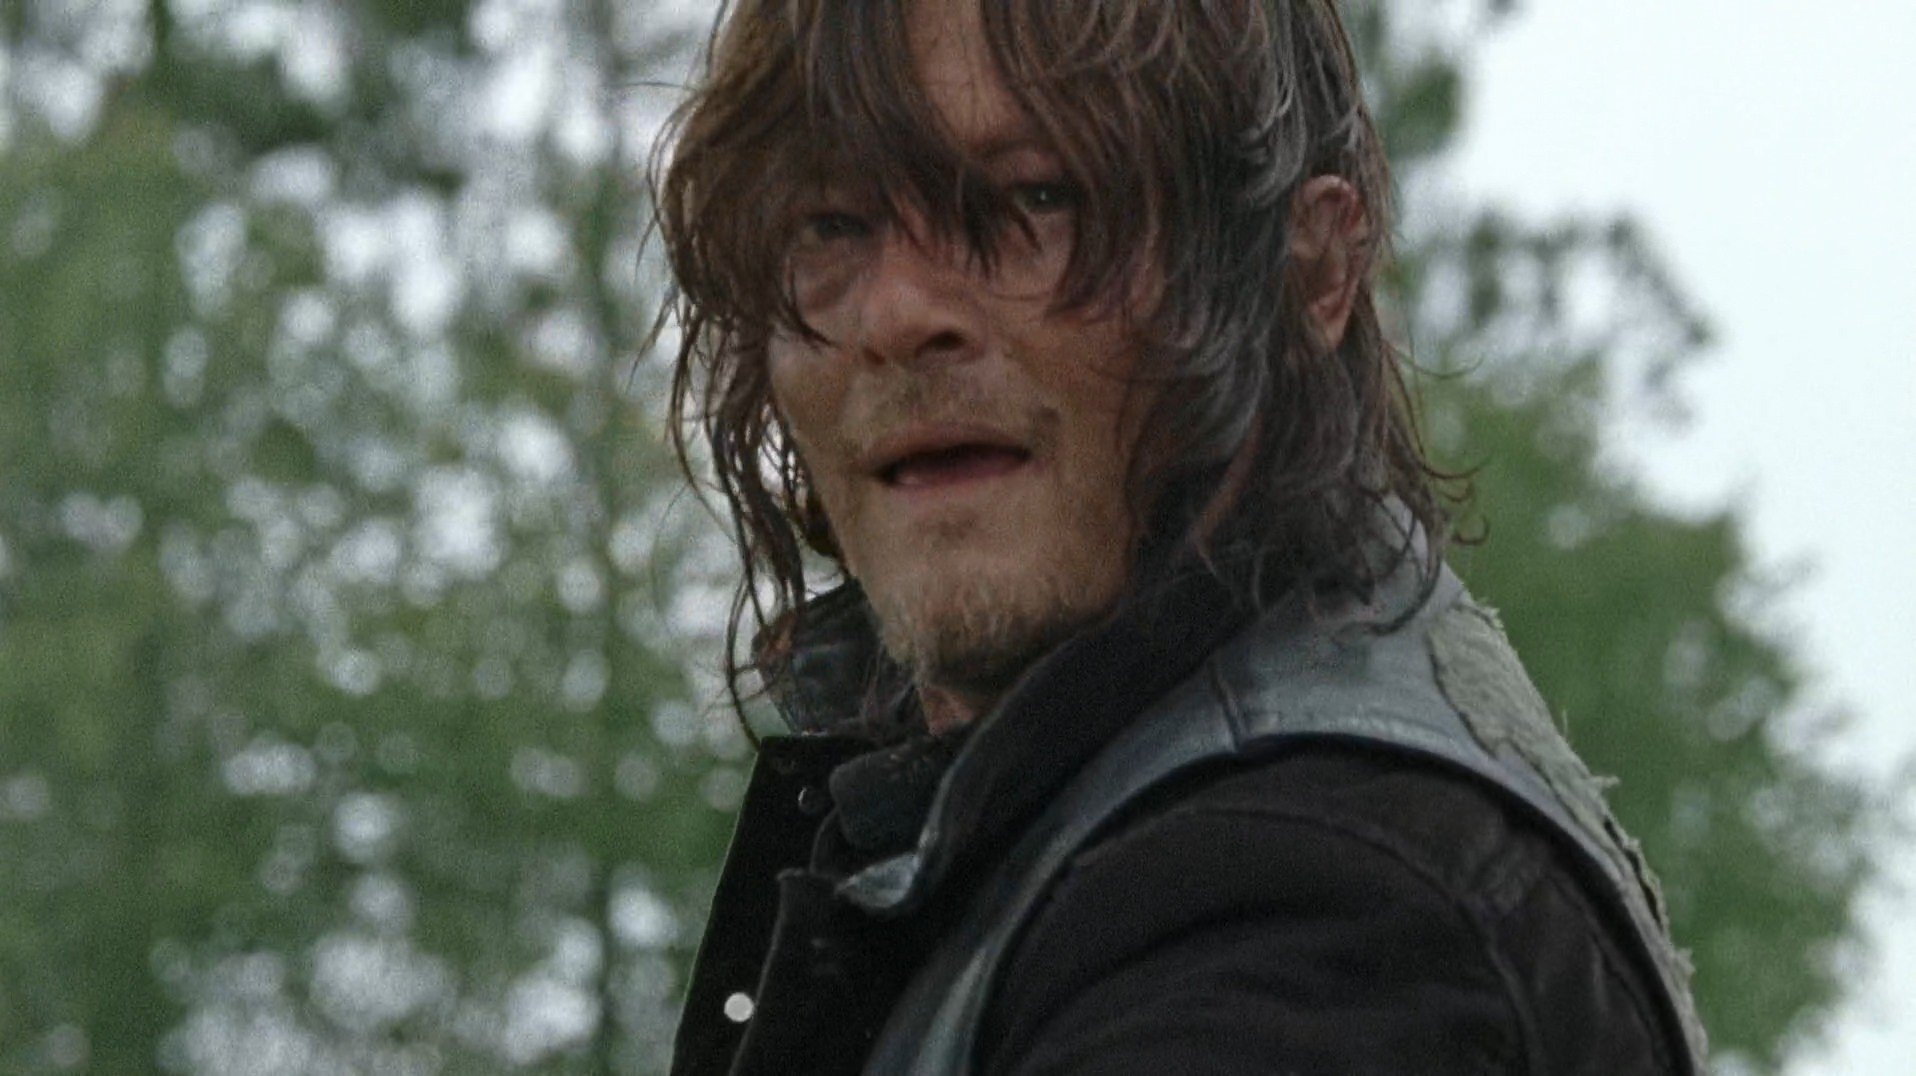 Who is daryl dating in the walking dead